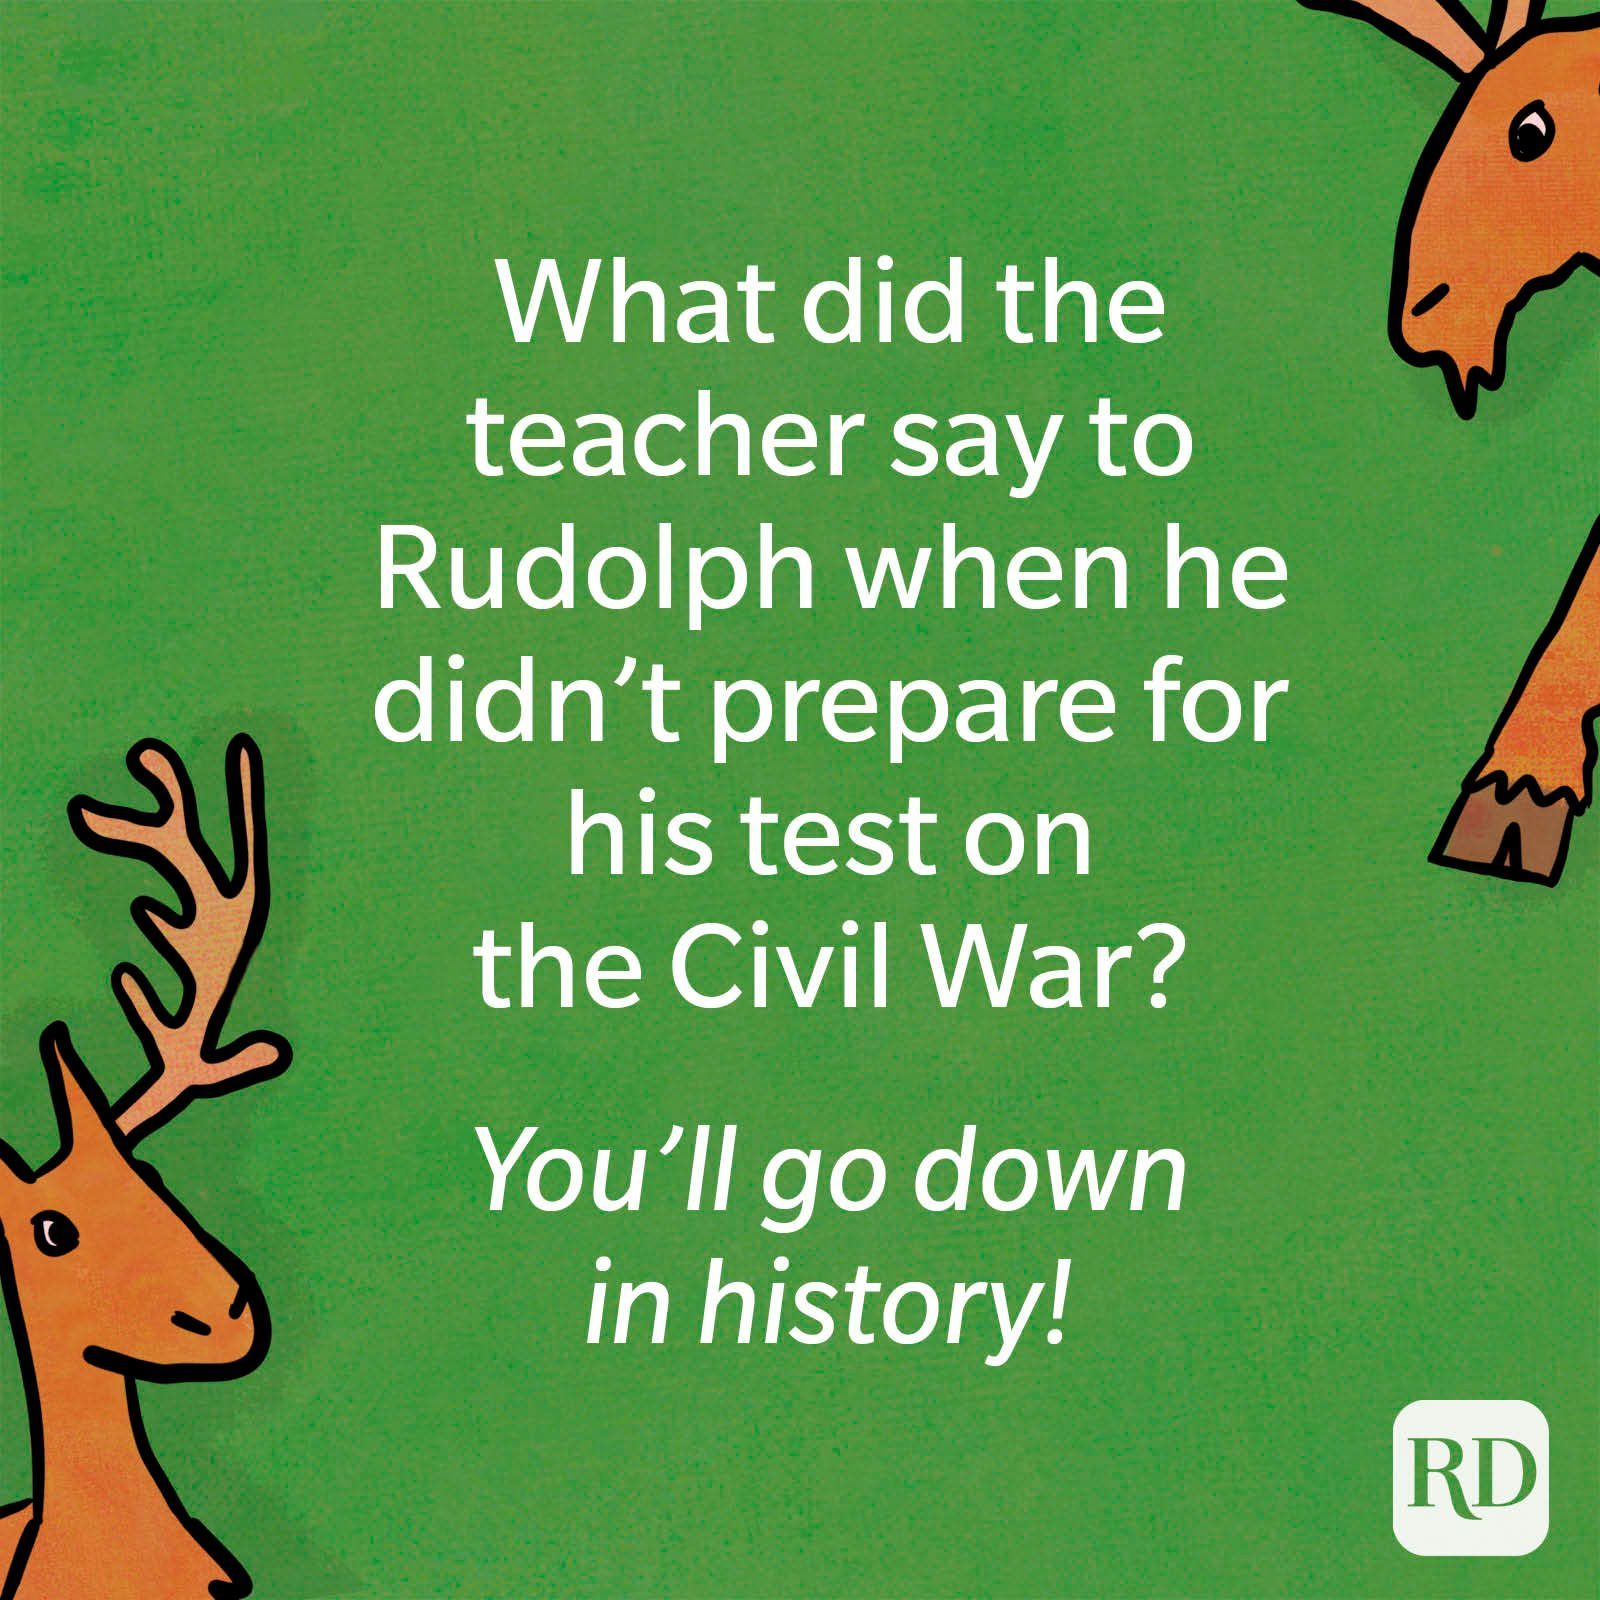 What did the teacher say to Rudolph when he didn't prepare for his test on the Civil War? You'll go down in history.